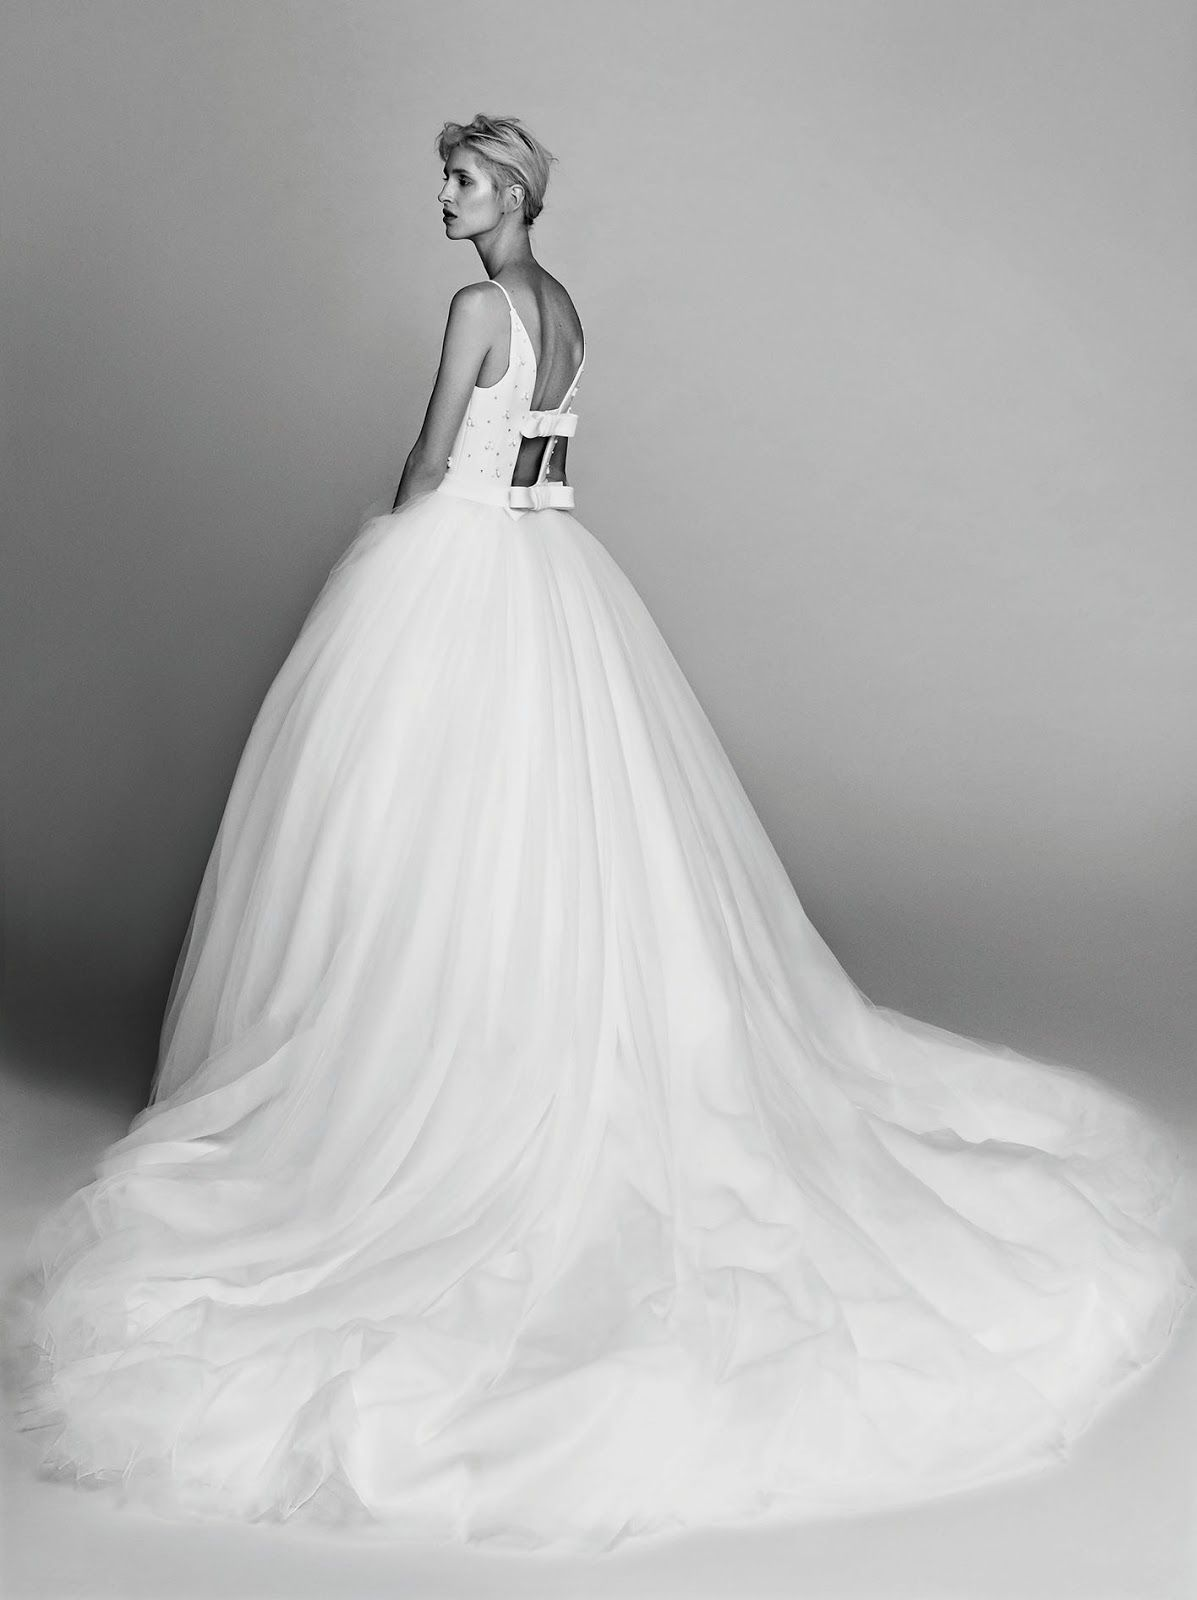 Bridal Beauty: Viktor and Rolf   ZsaZsa Bellagio - Like No Other